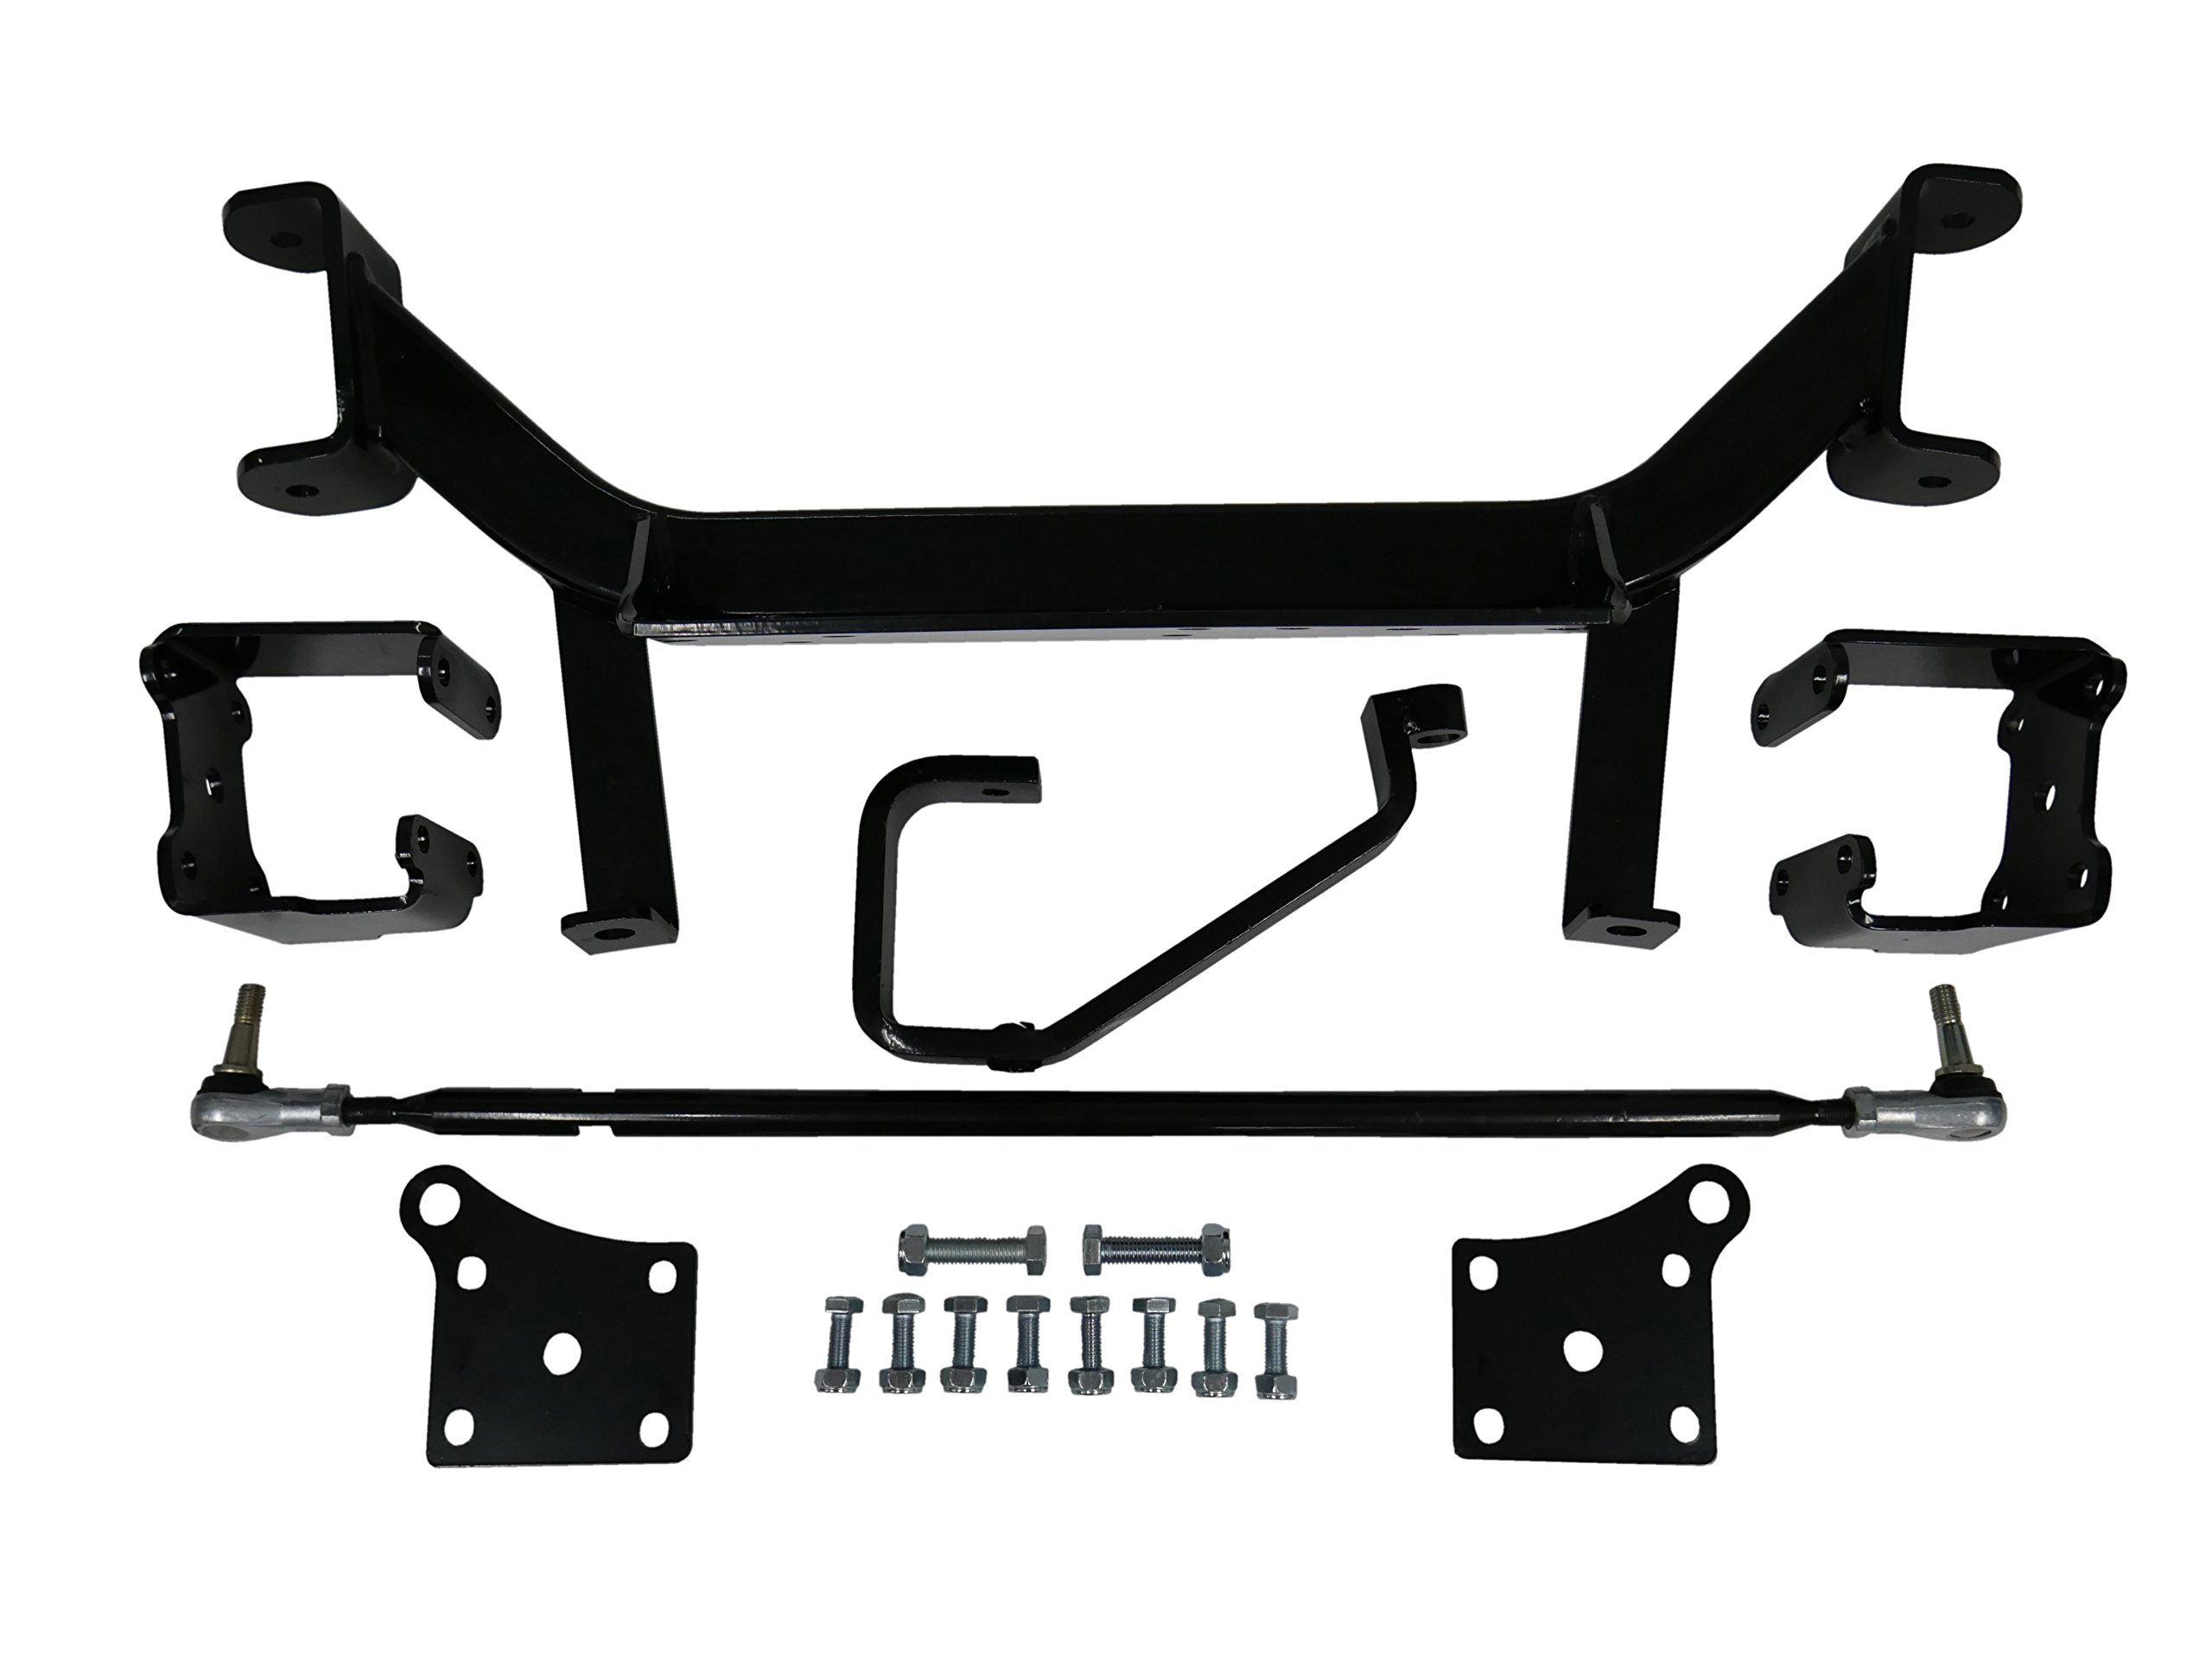 Freedom Offroad Powersports 6'' Drop Axle Lift Kit for EZGO Golf Cart 2001.5-2013 Electric TXT